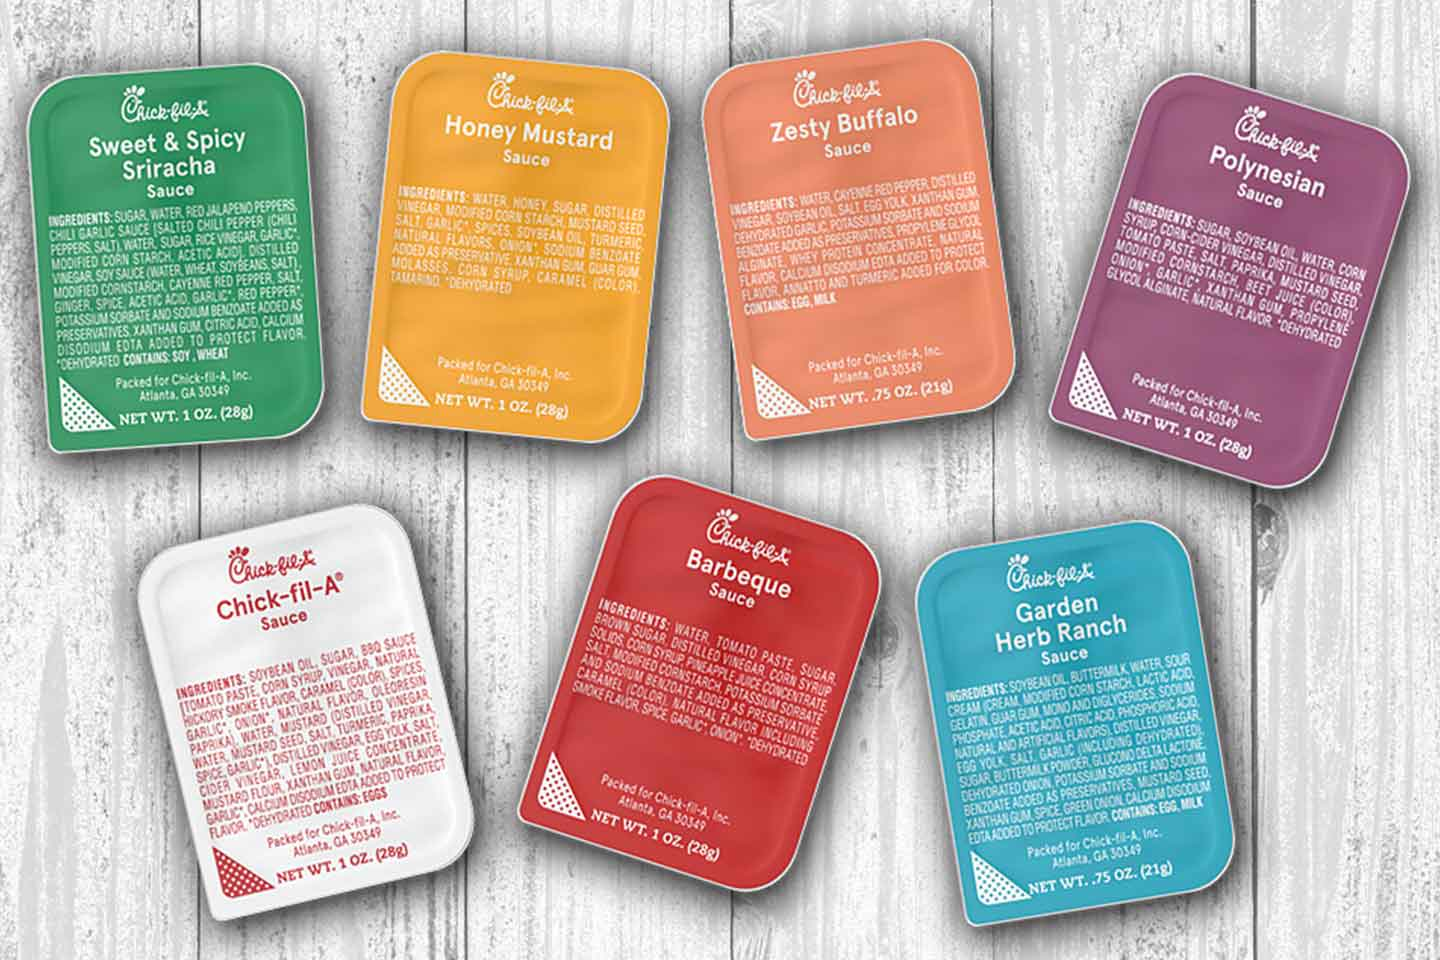 photograph about Chick Fil a Printable Application known as Exact flavor, fresh visual appearance: Chick-fil-A sauces and dressings contemporary